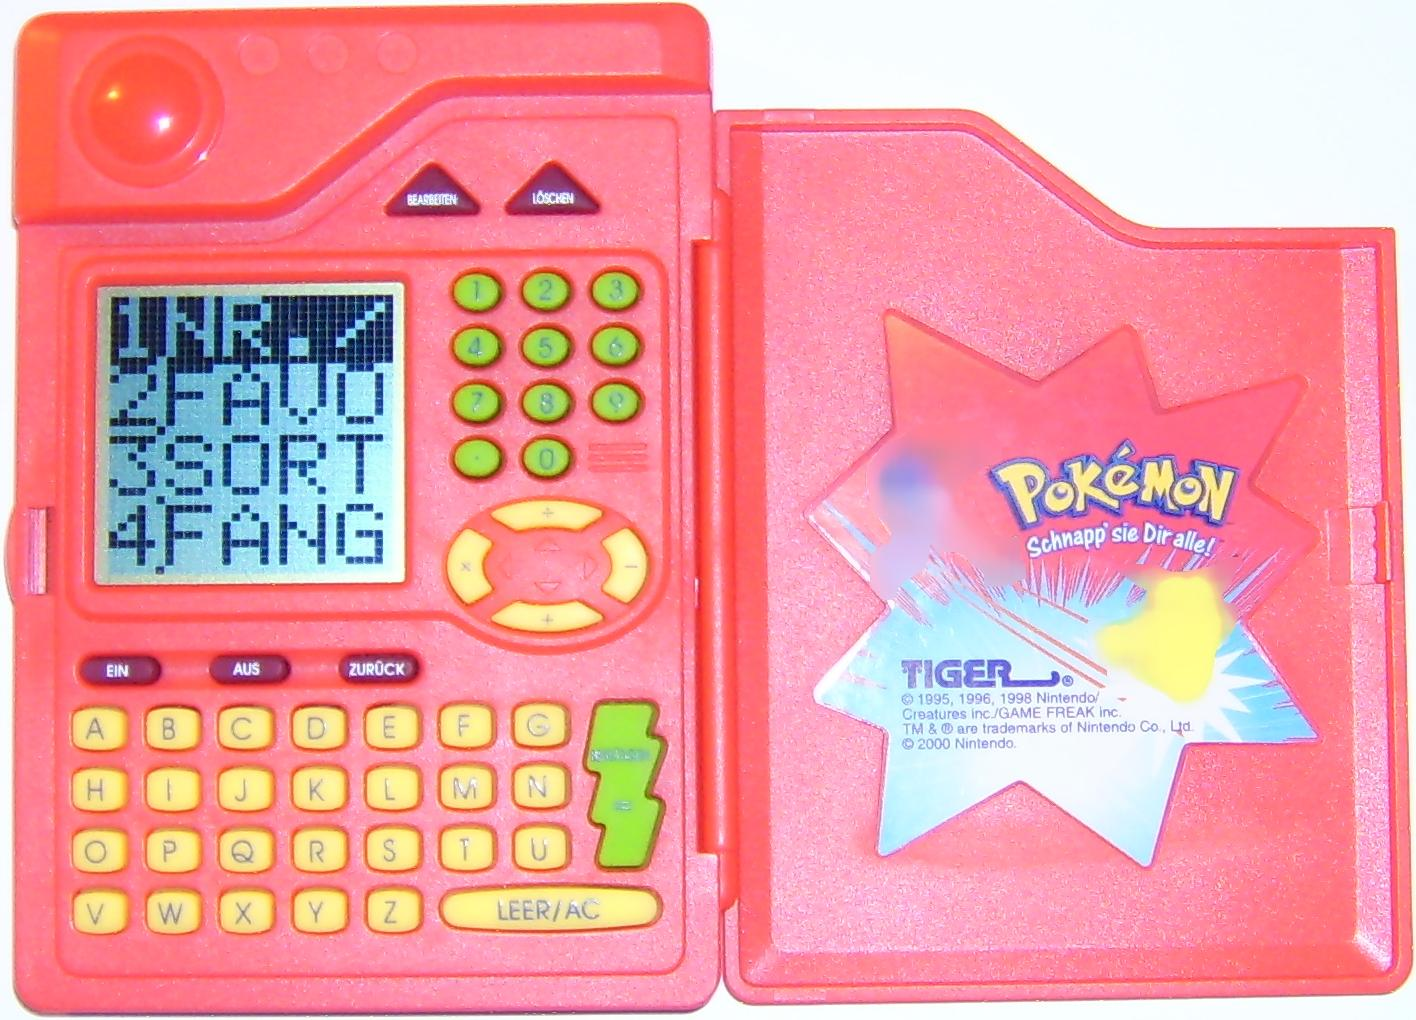 Fanmade Pokemon Gen 6 Pokedex Is Amazing